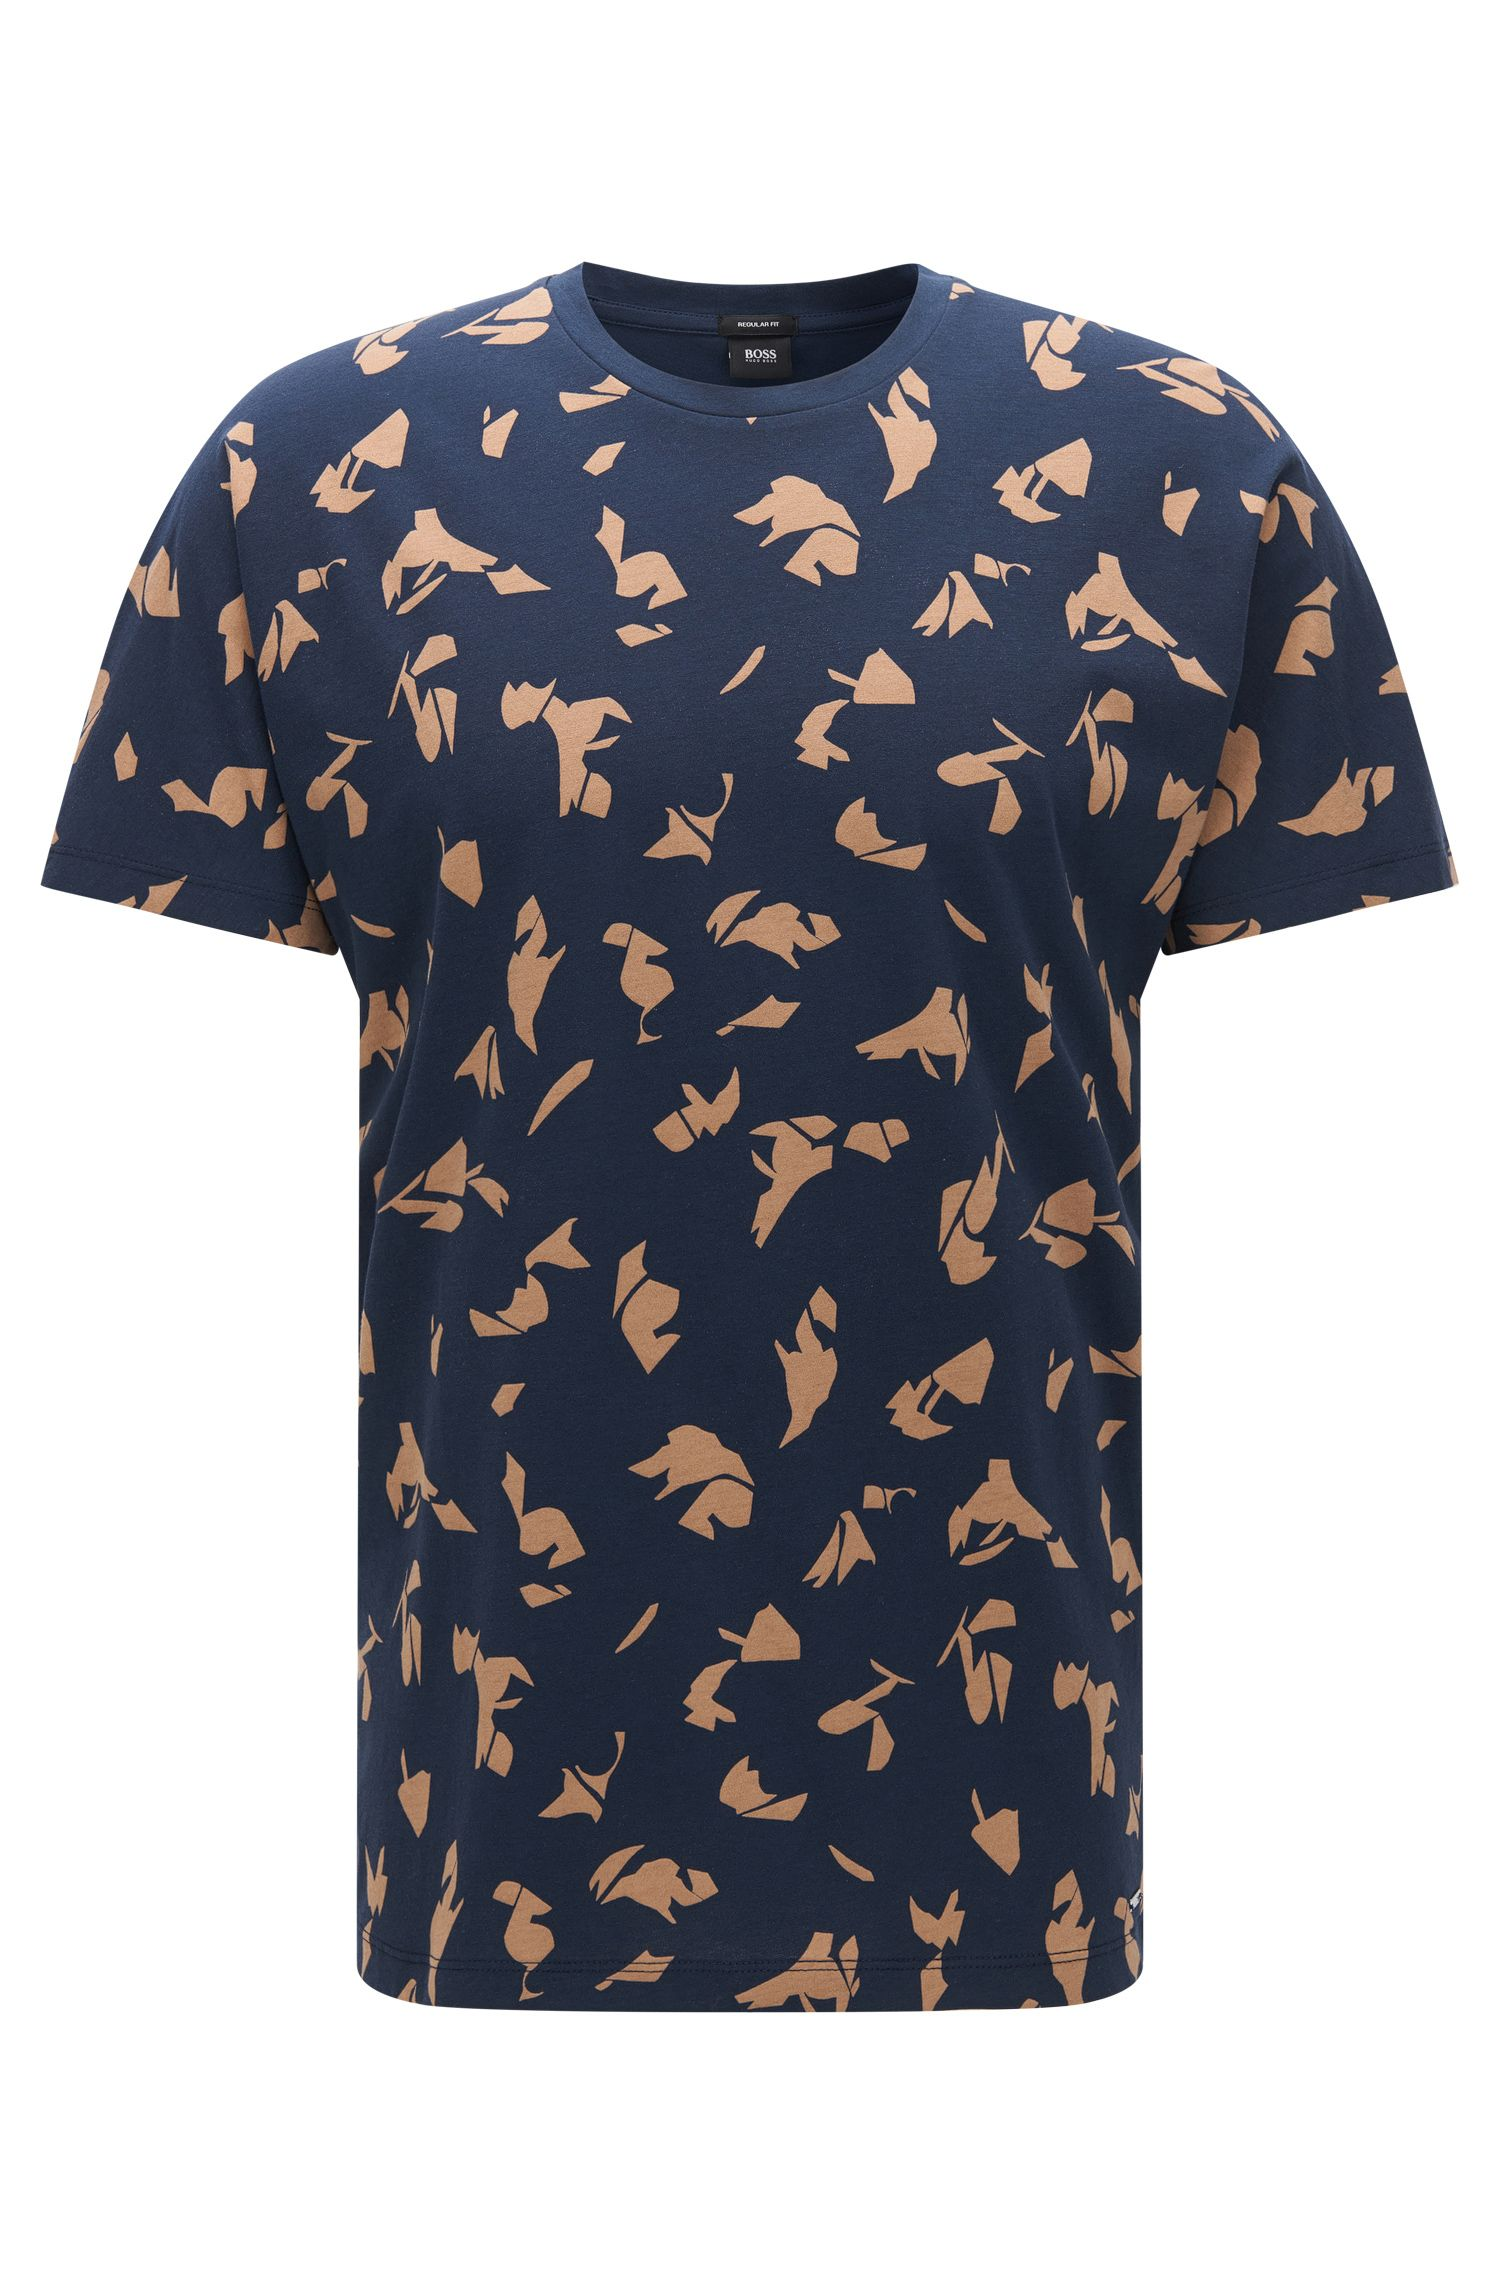 Patterned Cotton T-Shirt | Tiburt, Dark Blue